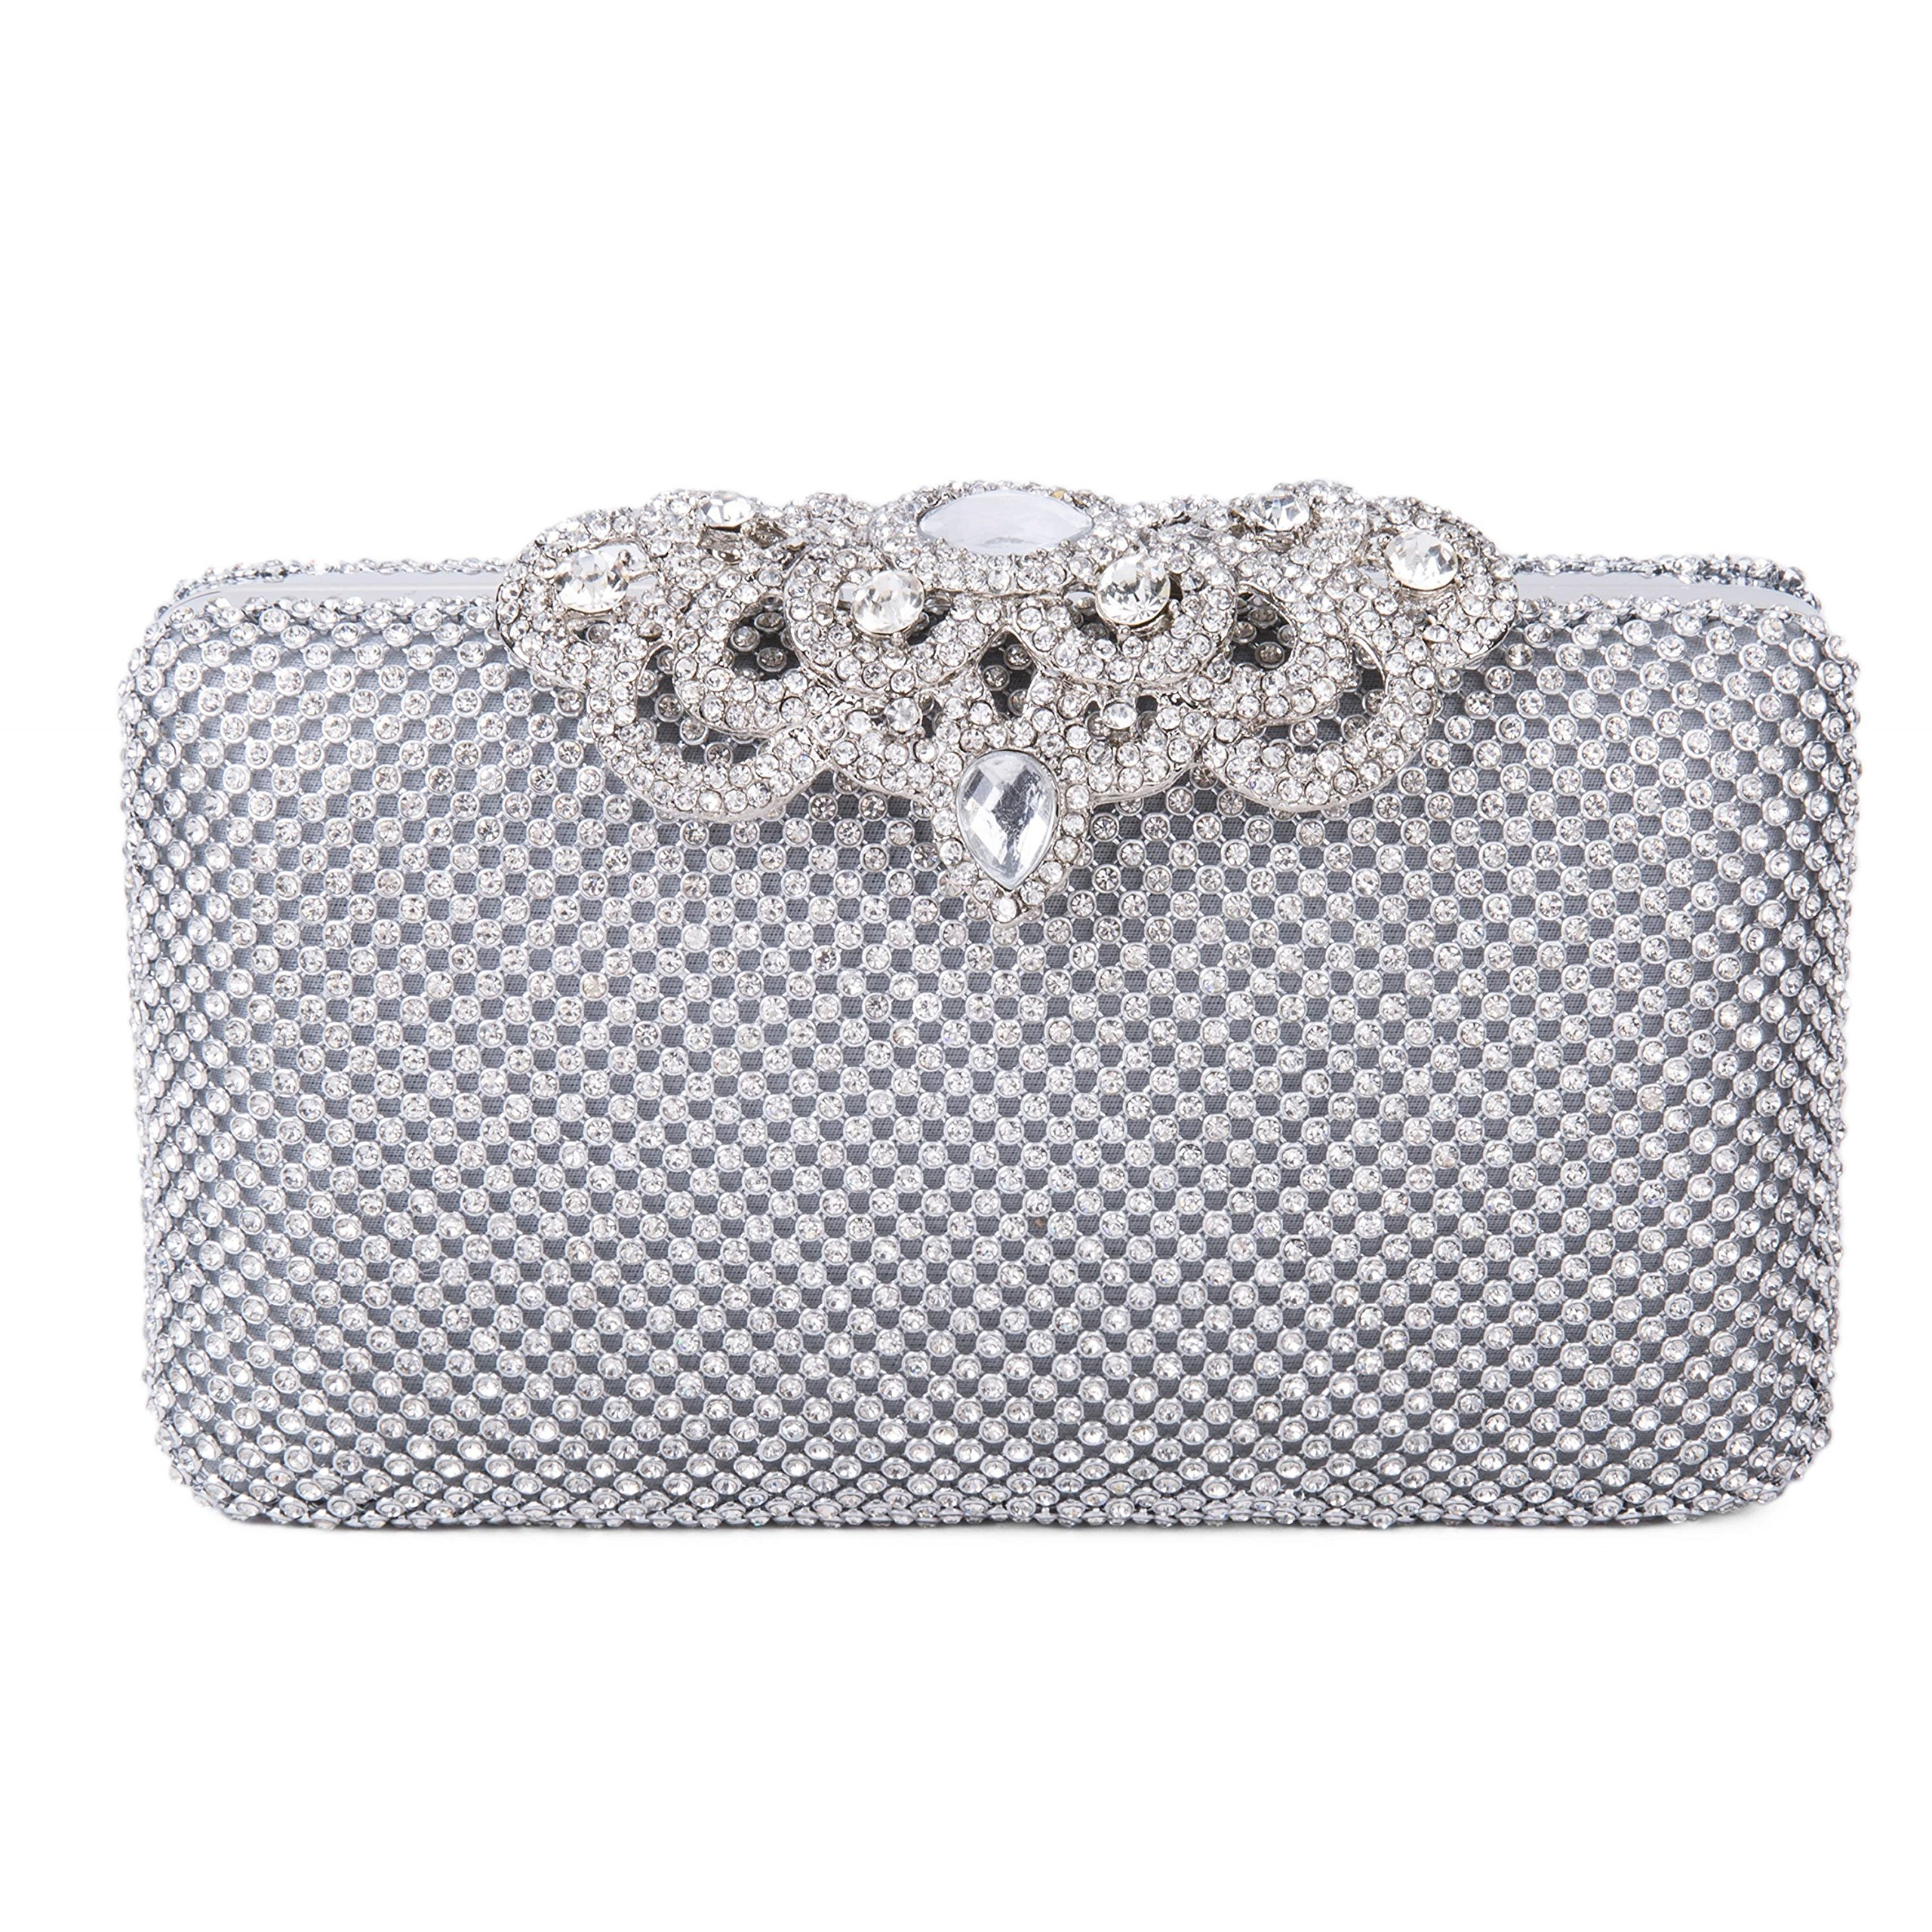 Lifewish Womens Crown Clutch Purse Bling Hard Box Rhinestone Crystal Evening Clutch(Silver)